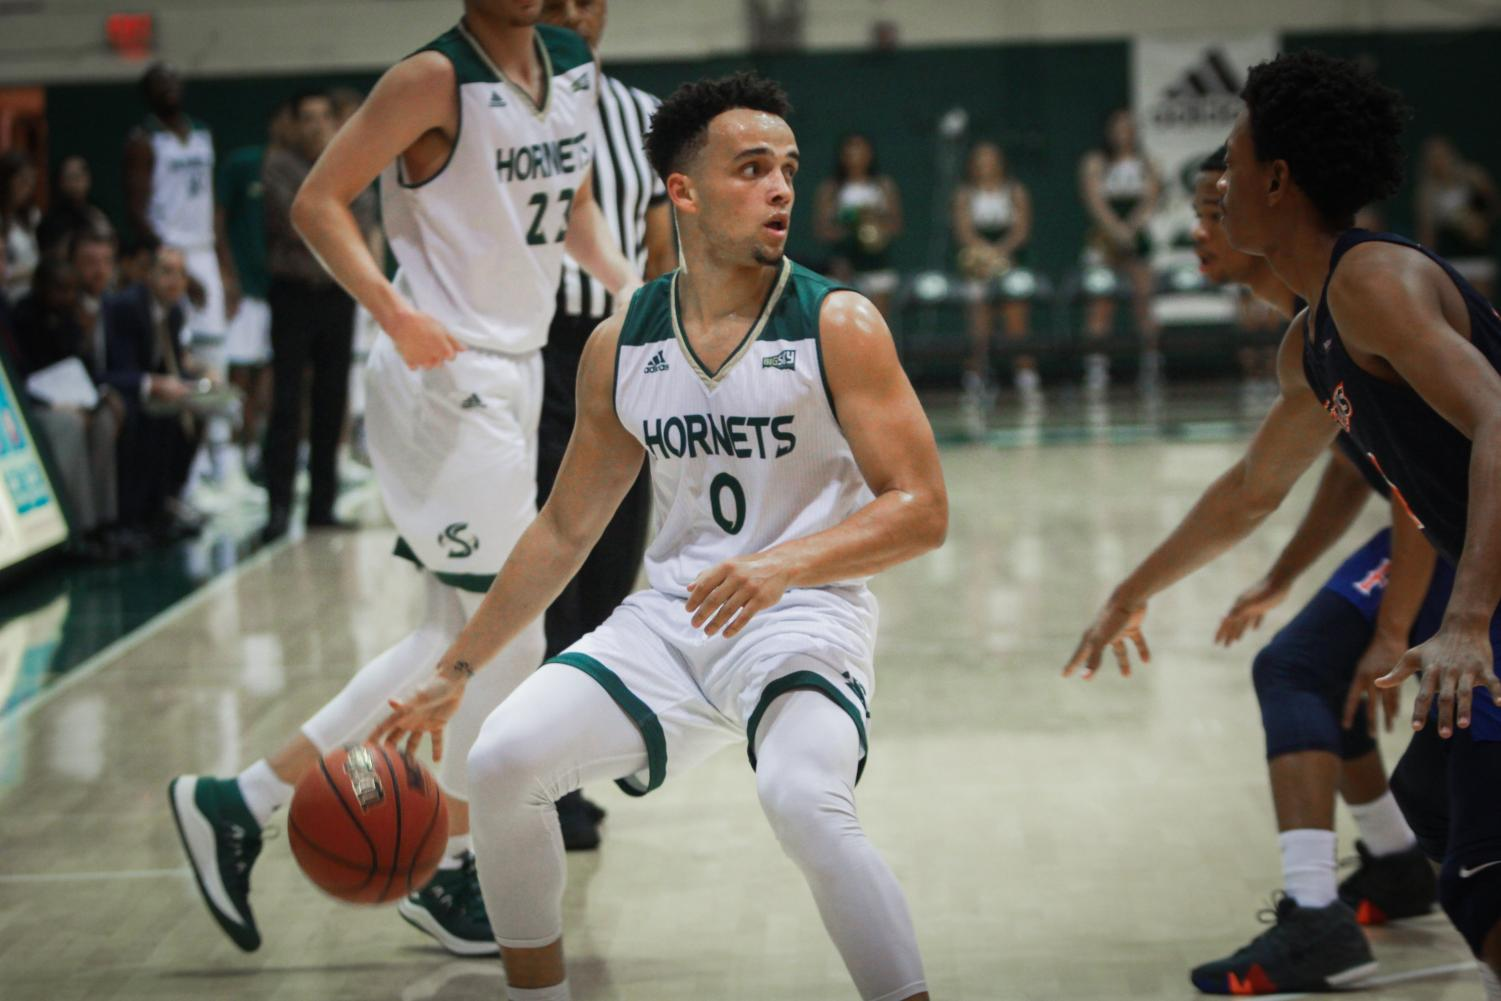 Sac State guard Marcus Graves dribbles the ball against Cal State Fullerton on Saturday, Nov. 24, 2018 at The Nest. Graves averaged 17 points, 4.7 rebounds, 5.4 assists, and 2 steals per game while at Sac State.